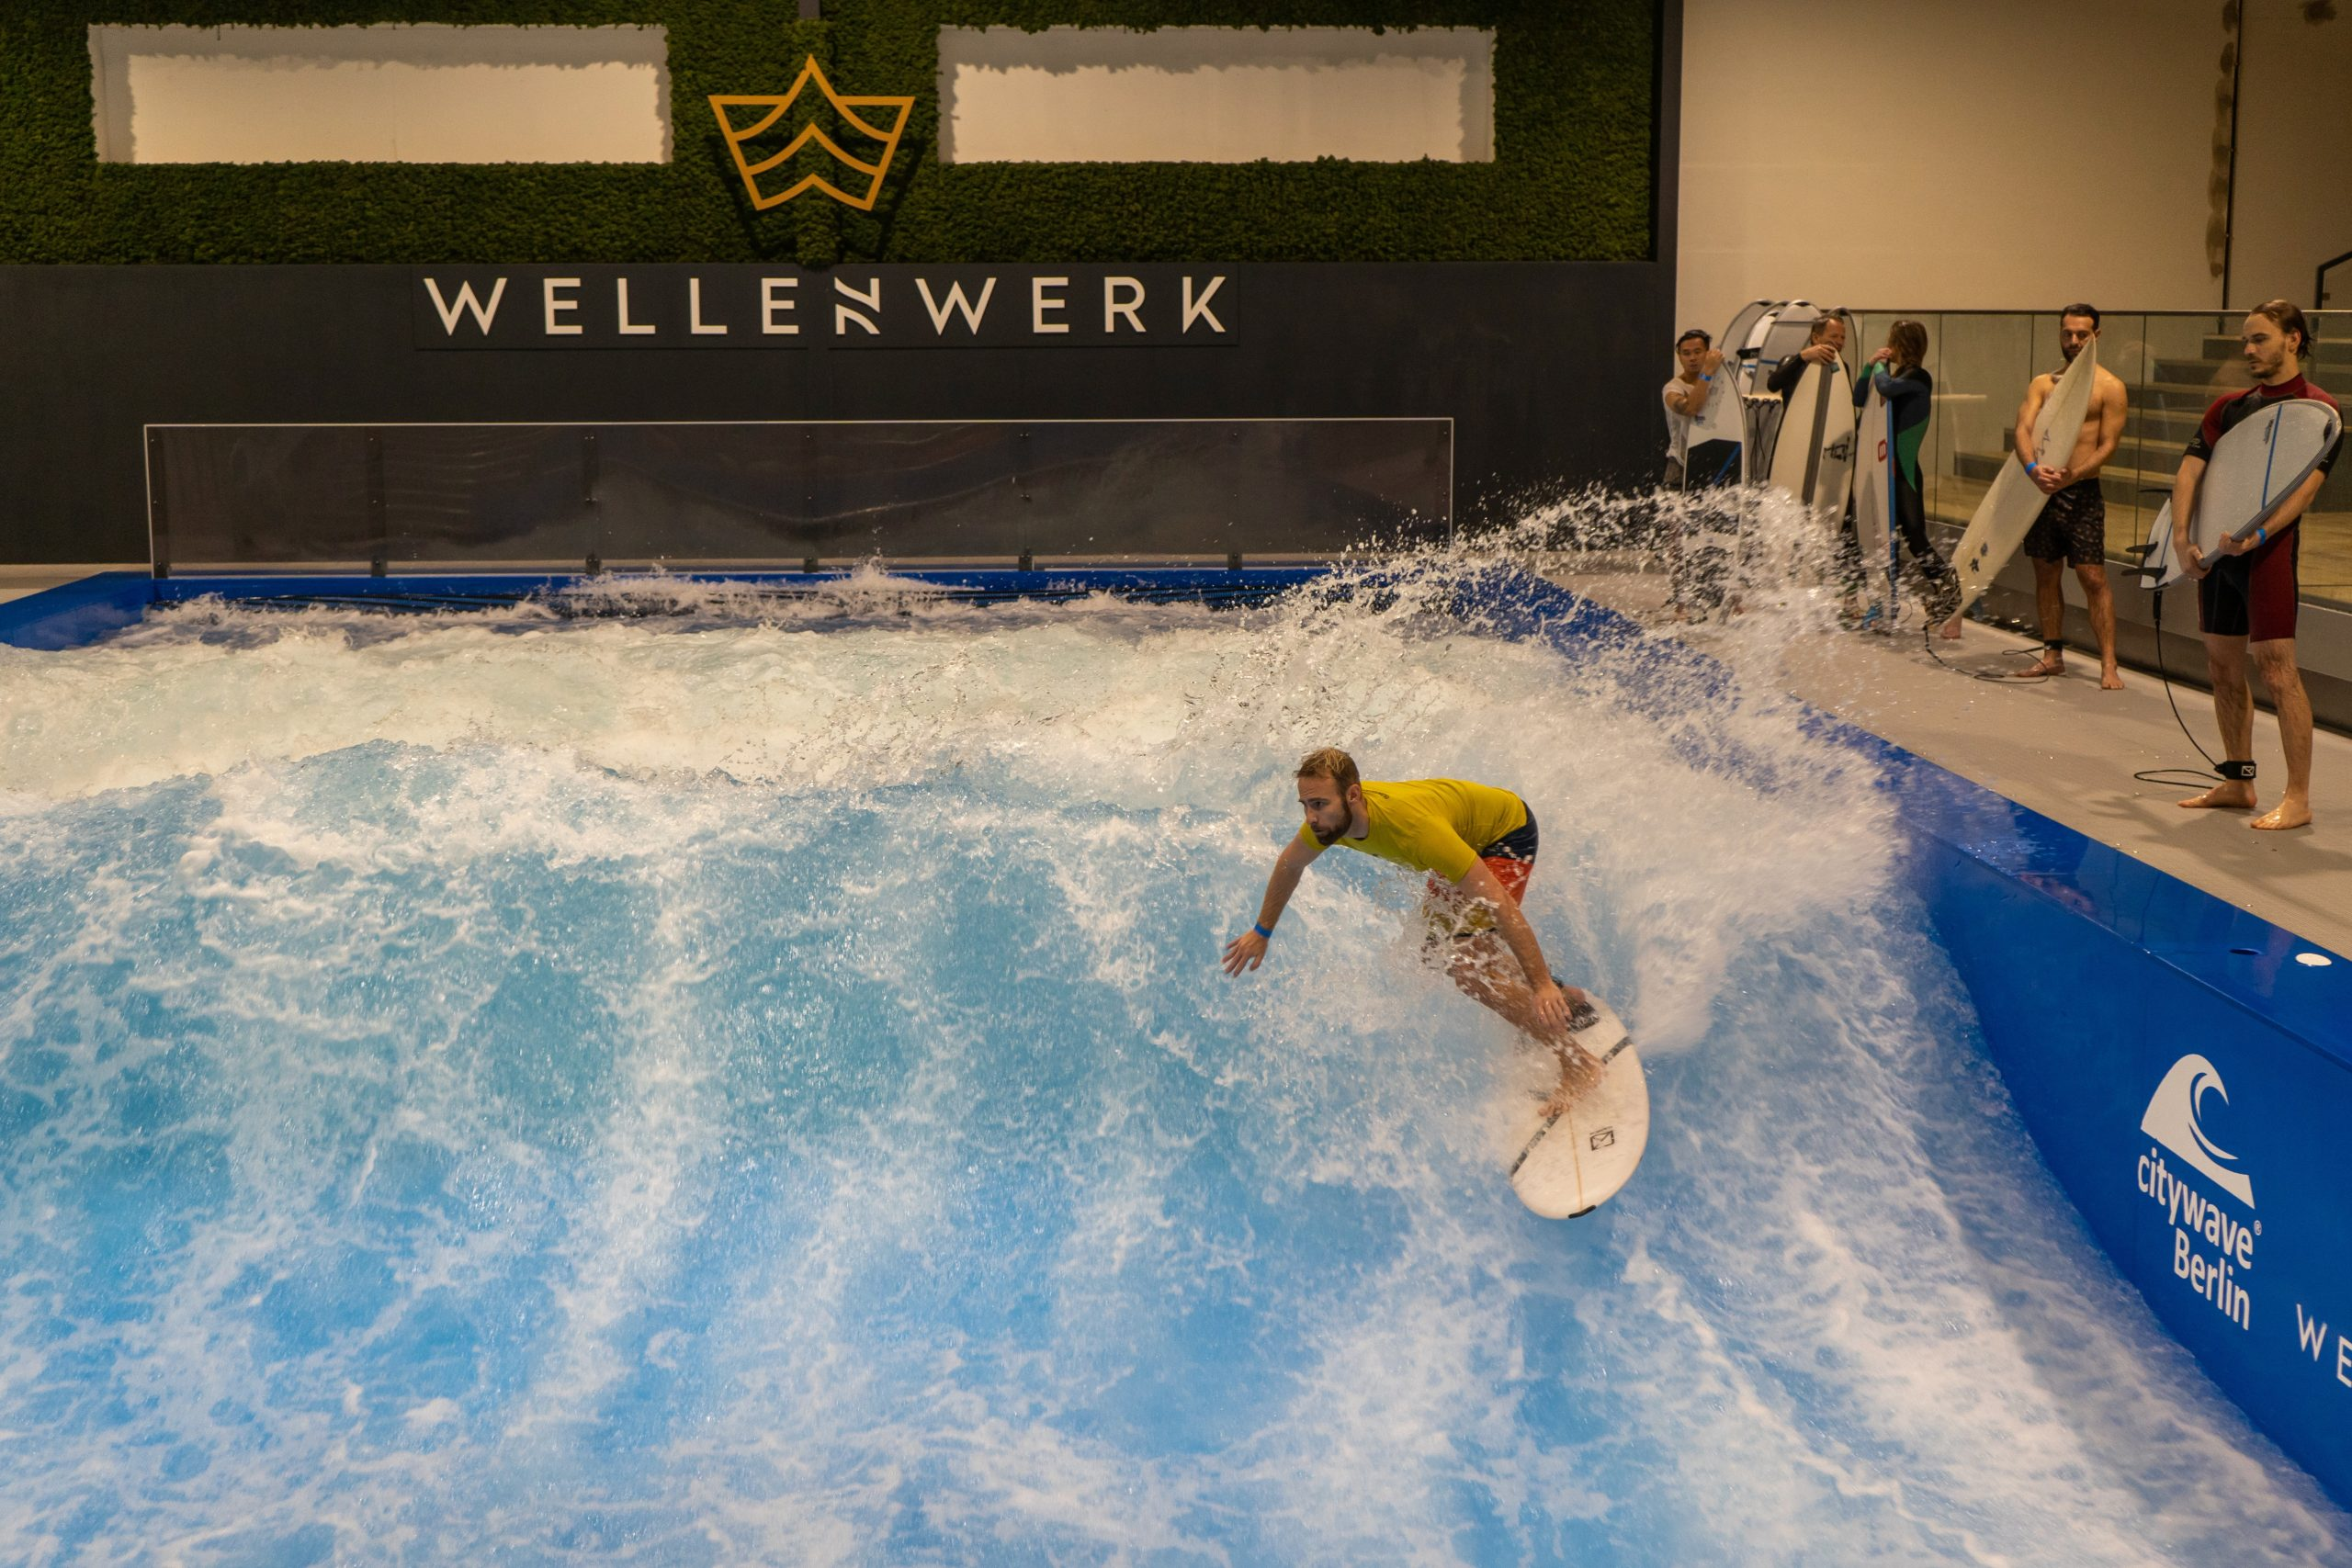 Surfing Wellenwerk